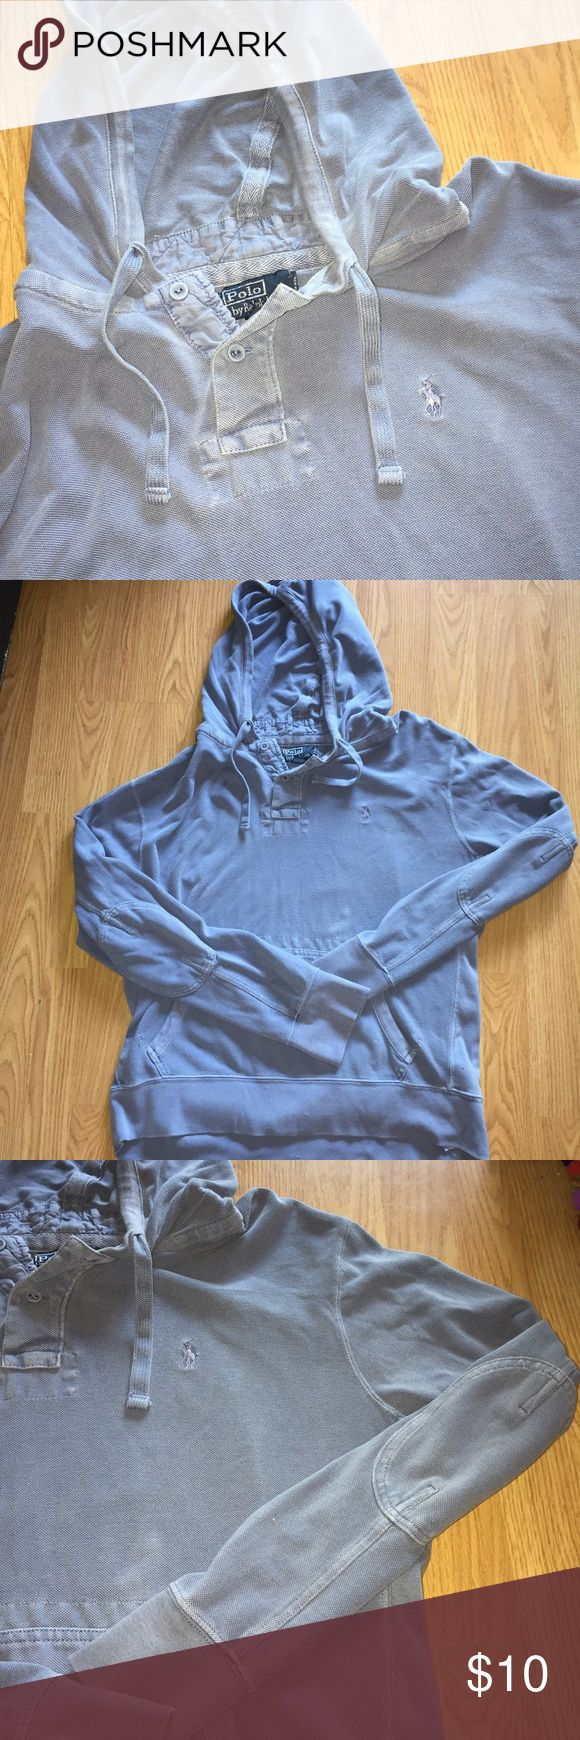 POLO Ralph Lauren pullover hoodie blue XL mens POLO. Ralph Lauren. Men's XL. Pullover with hood and pocket in front. Distressed blue color. This shirt has flaws that's why I am selling for cheap. There are several small holes near tag but when you wear it the holes are covered by the hood so unnoticeable. There is also some extra thread on the hood near both edges of the pockets. It could possible be cut off but I haven't tried. (See pics) ask questions Ralph Lauren Jackets & Coats…